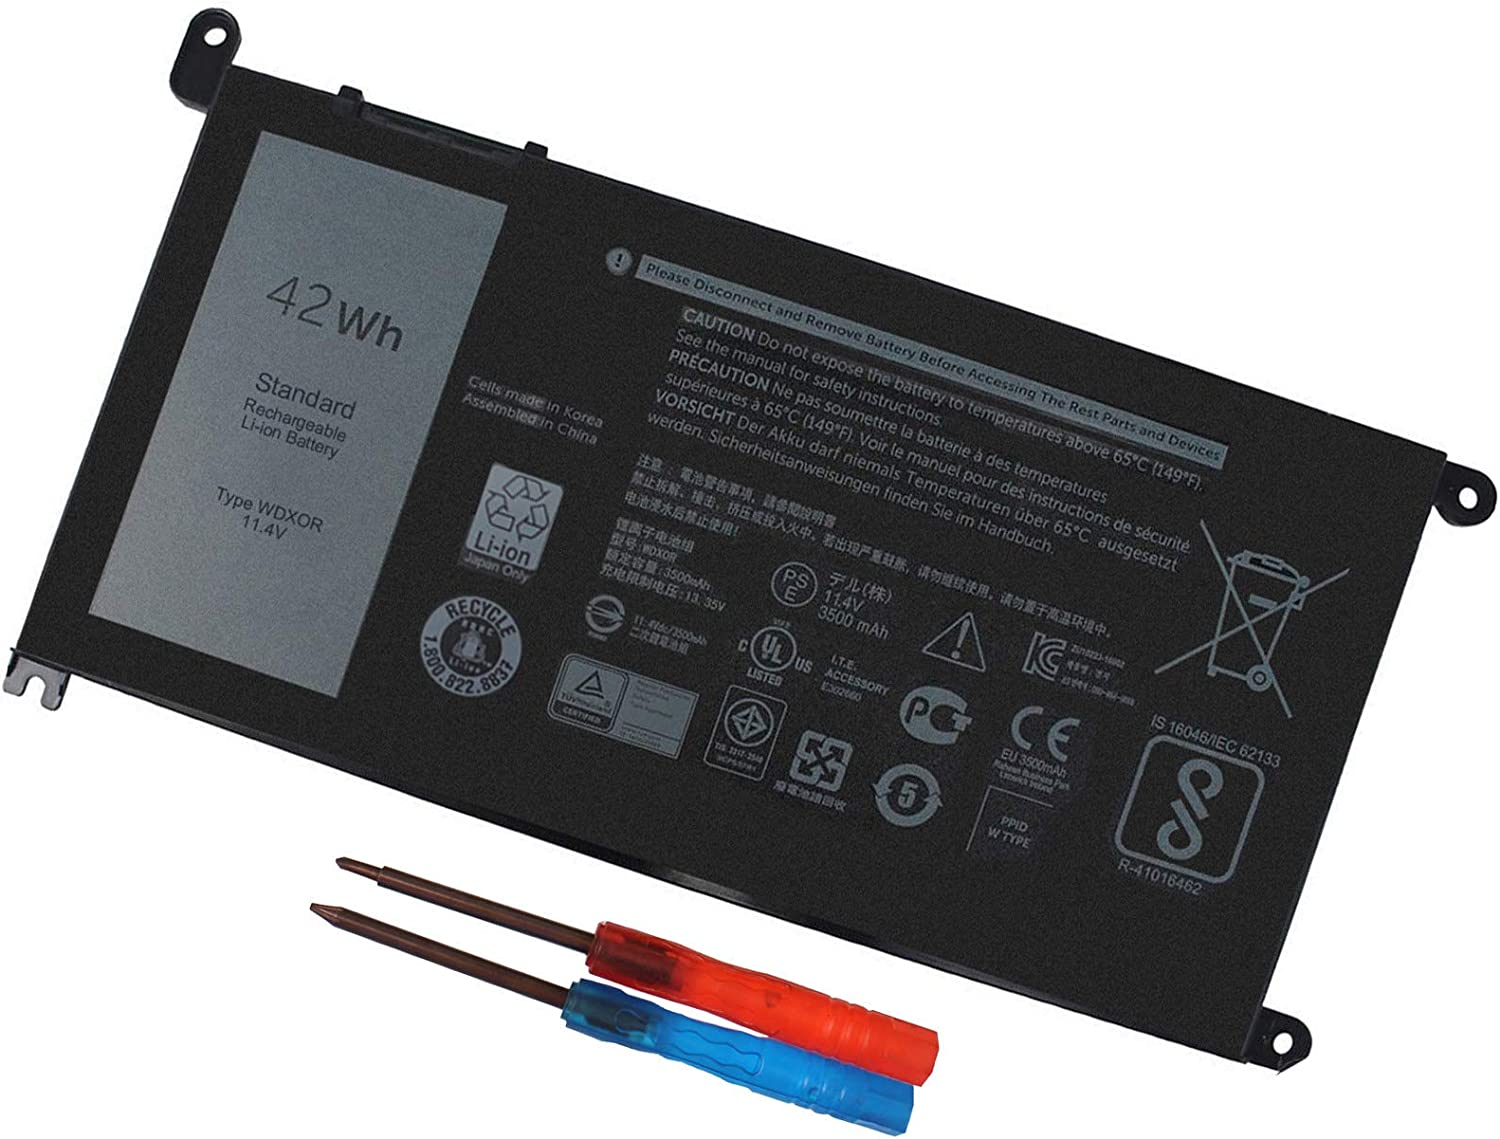 WDX0R Laptop Battery for dell Inspiron 15 7579 7569 5578 5565 5567 5568 5570 5775 5579 7560 7570 13 5378 5368 7375 7368 7378 17 5765 5767 5770 Series P69G001 P58F P58F001 P75F P66F P69G 3CRH3